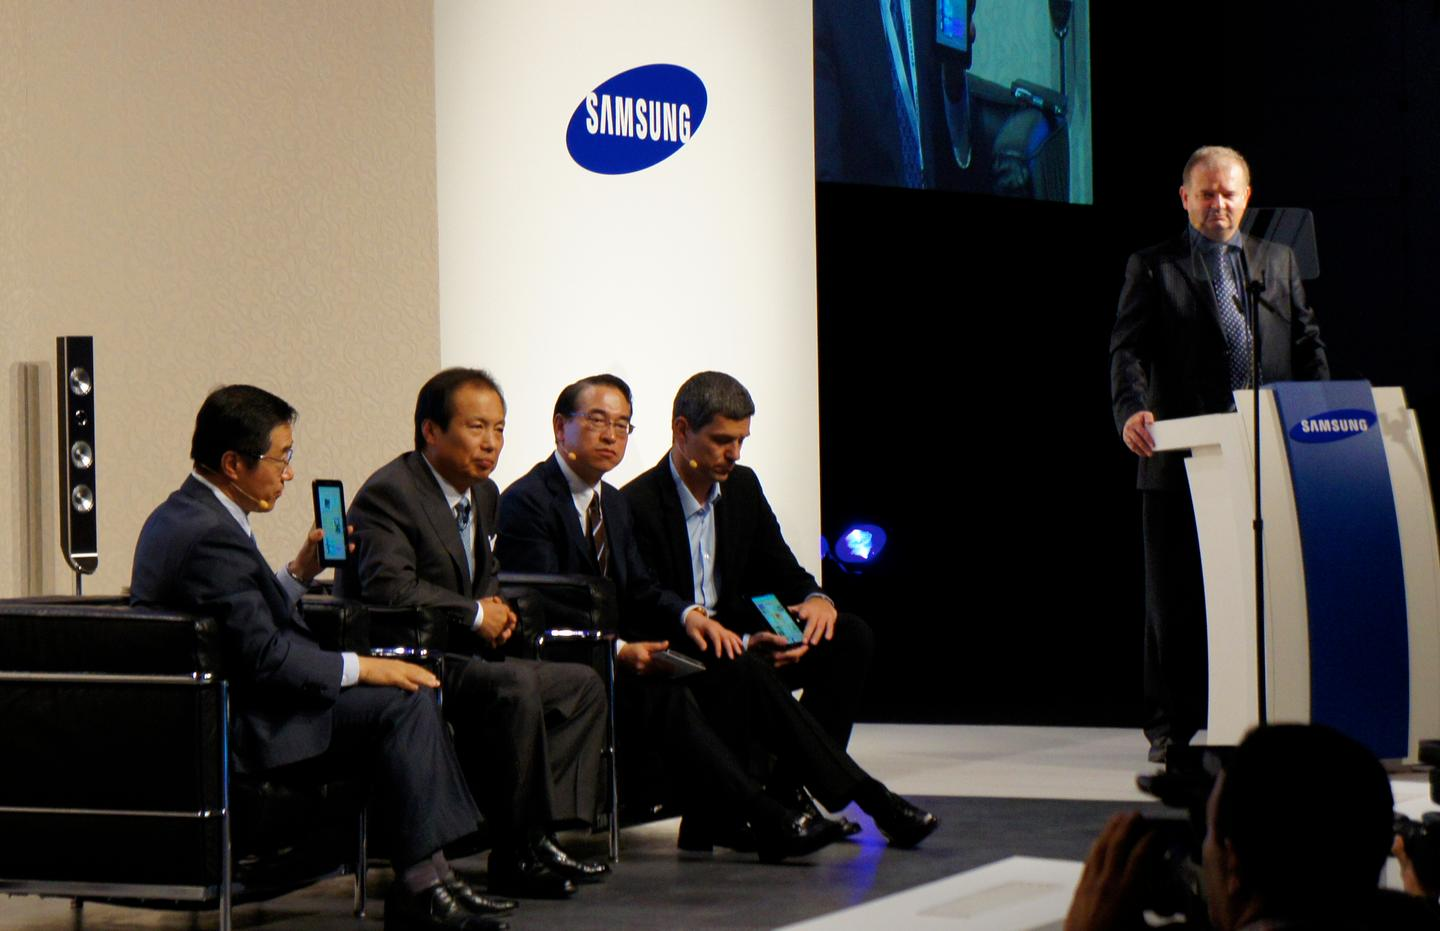 Samsung executives discuss the new tablet at the IFA launch